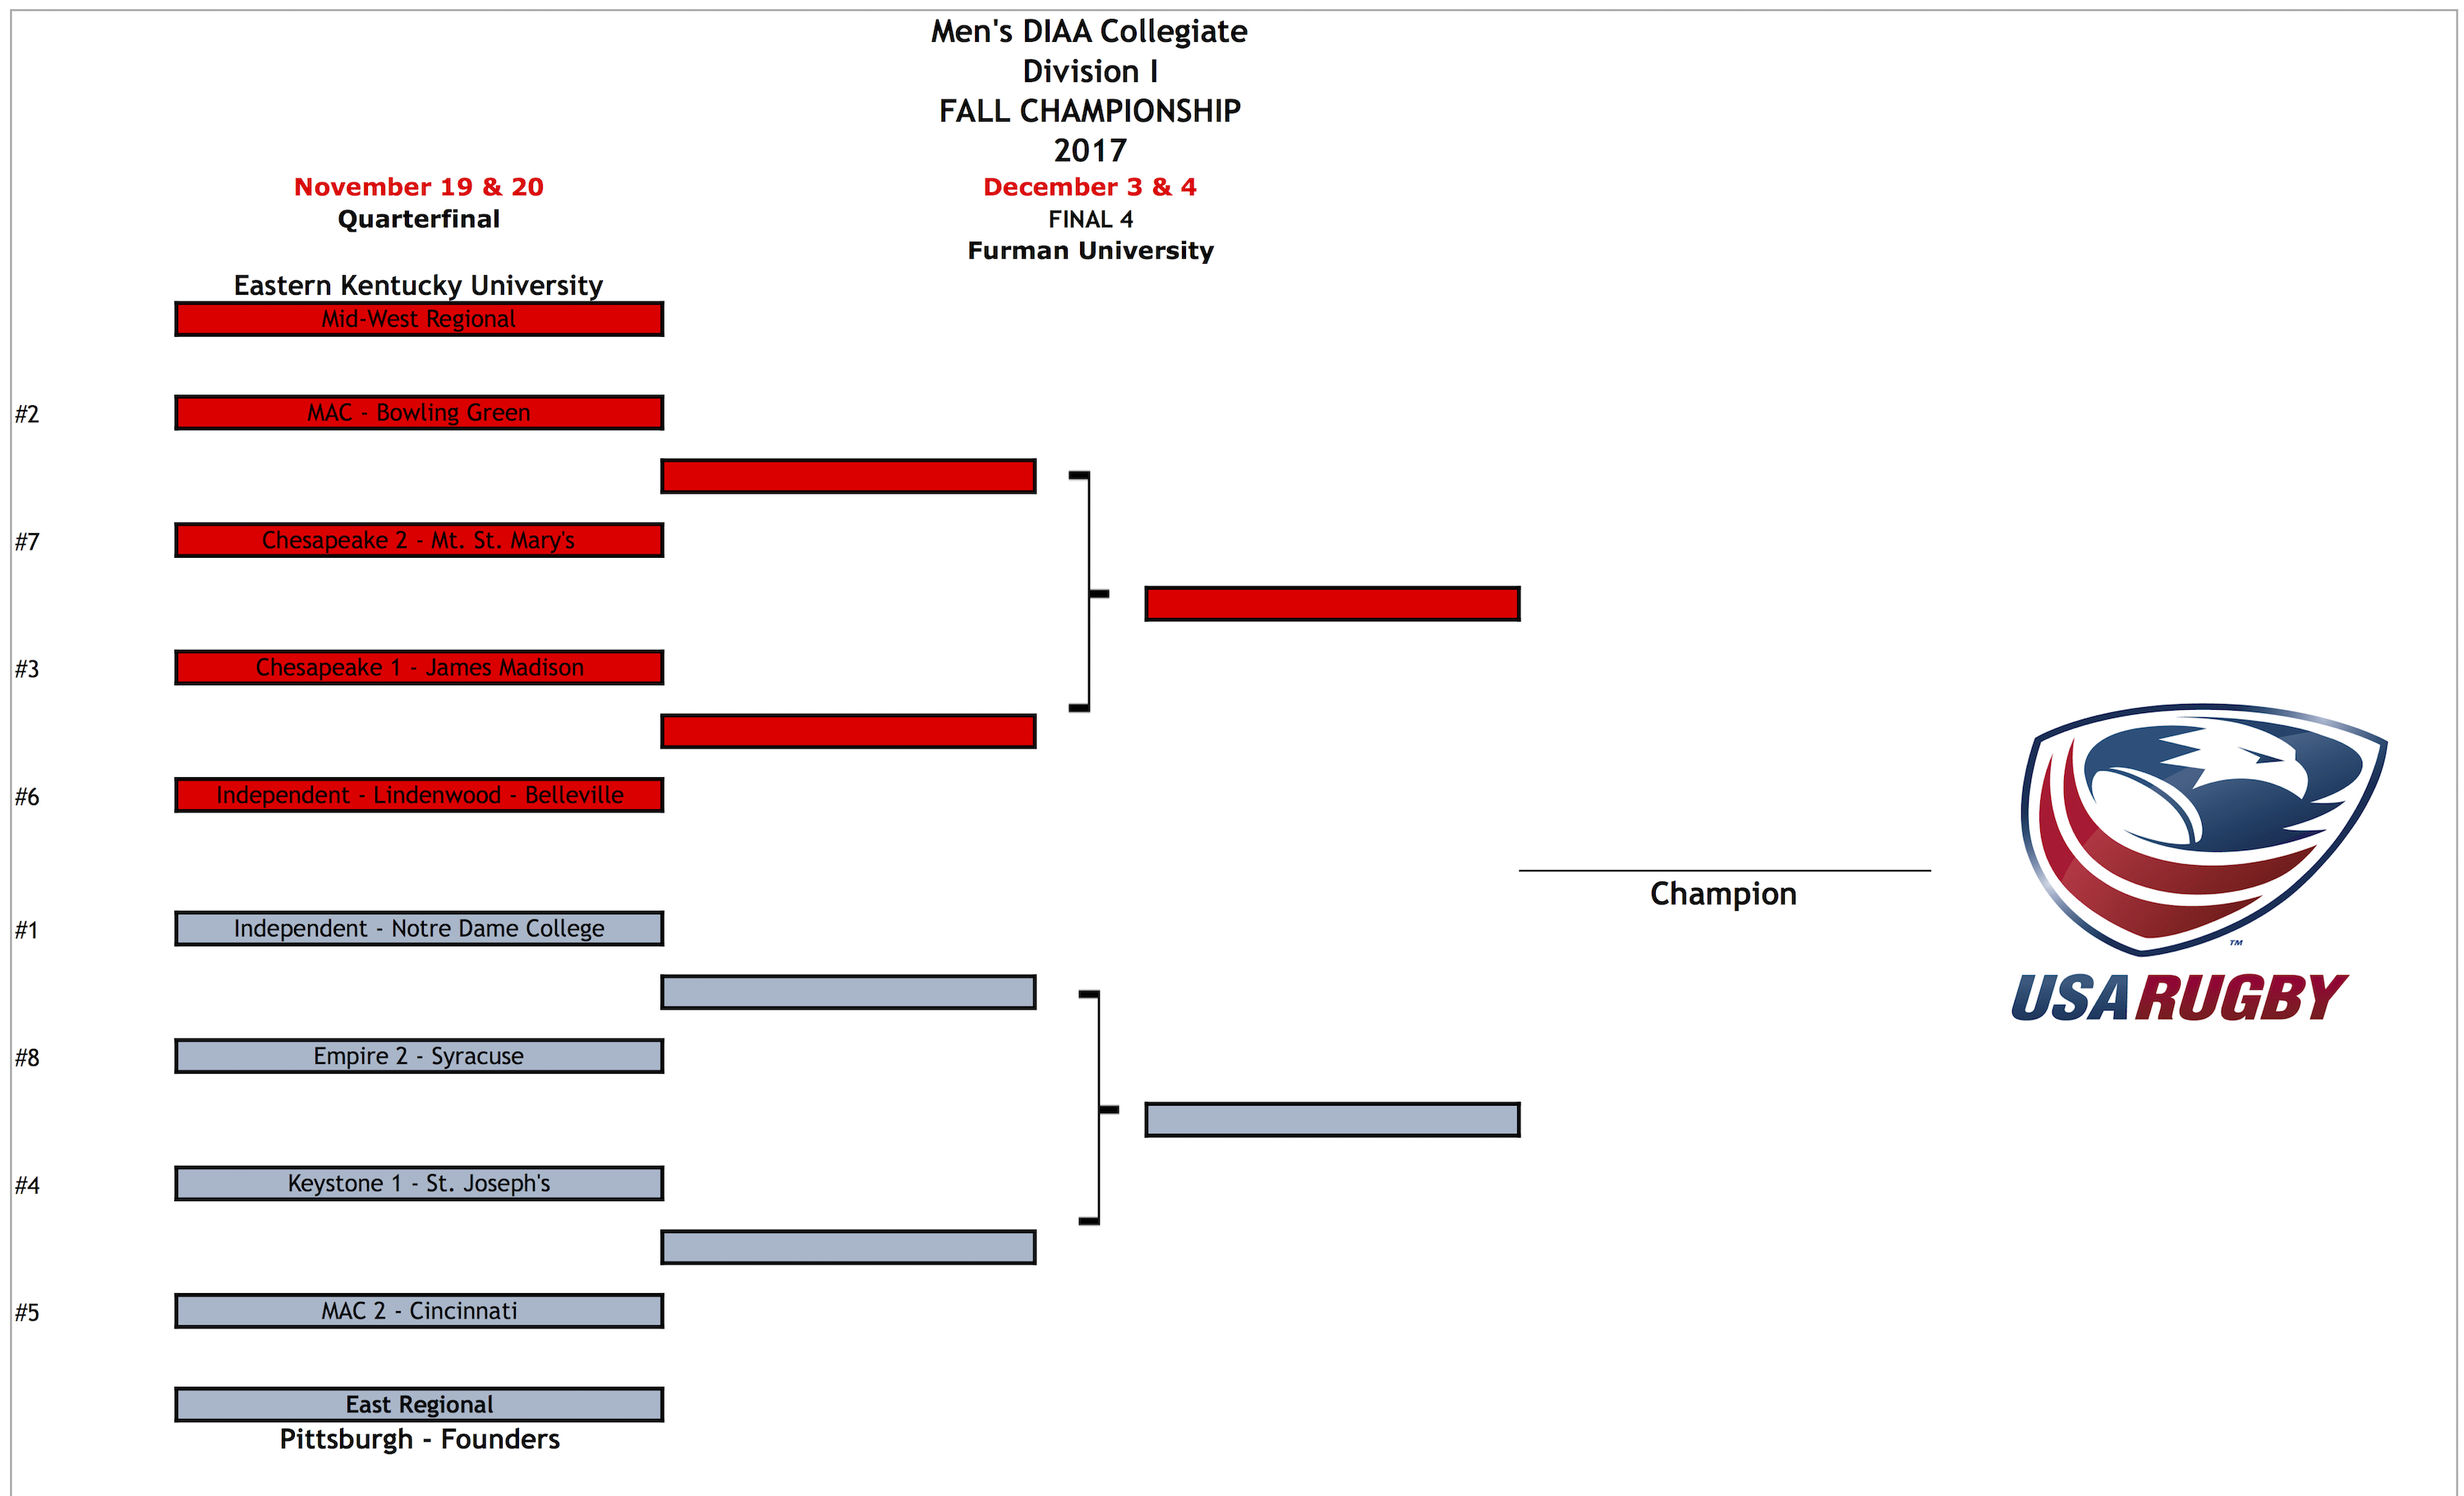 USA Rugby DIAA Fall playoff bracket 2016